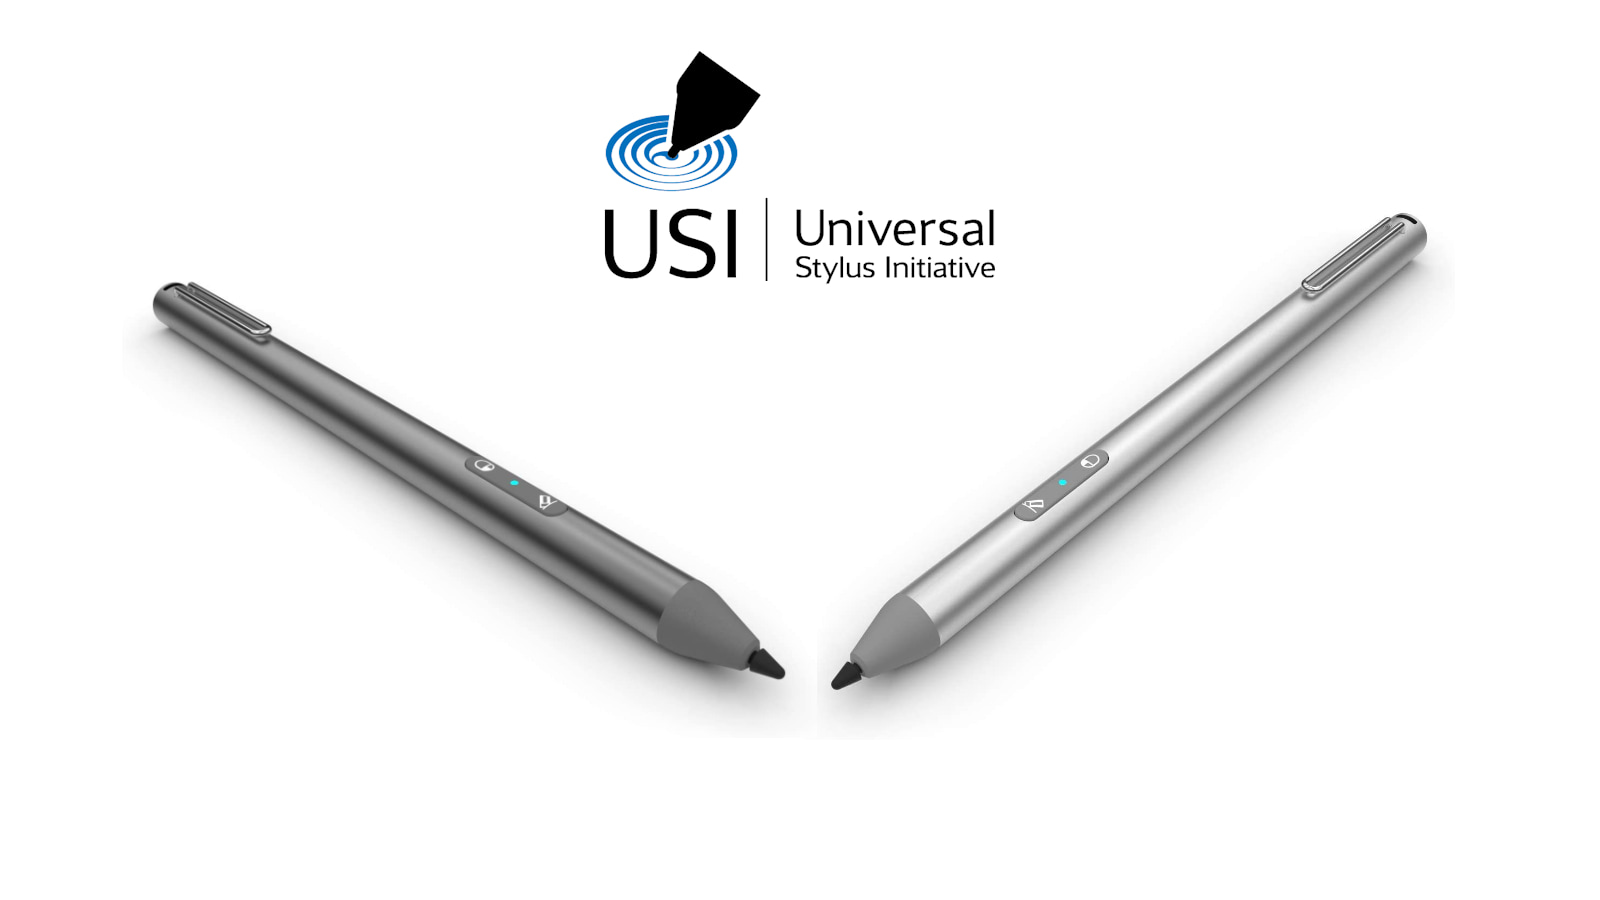 A new rechargeable USI stylus from Broonel has hit the market